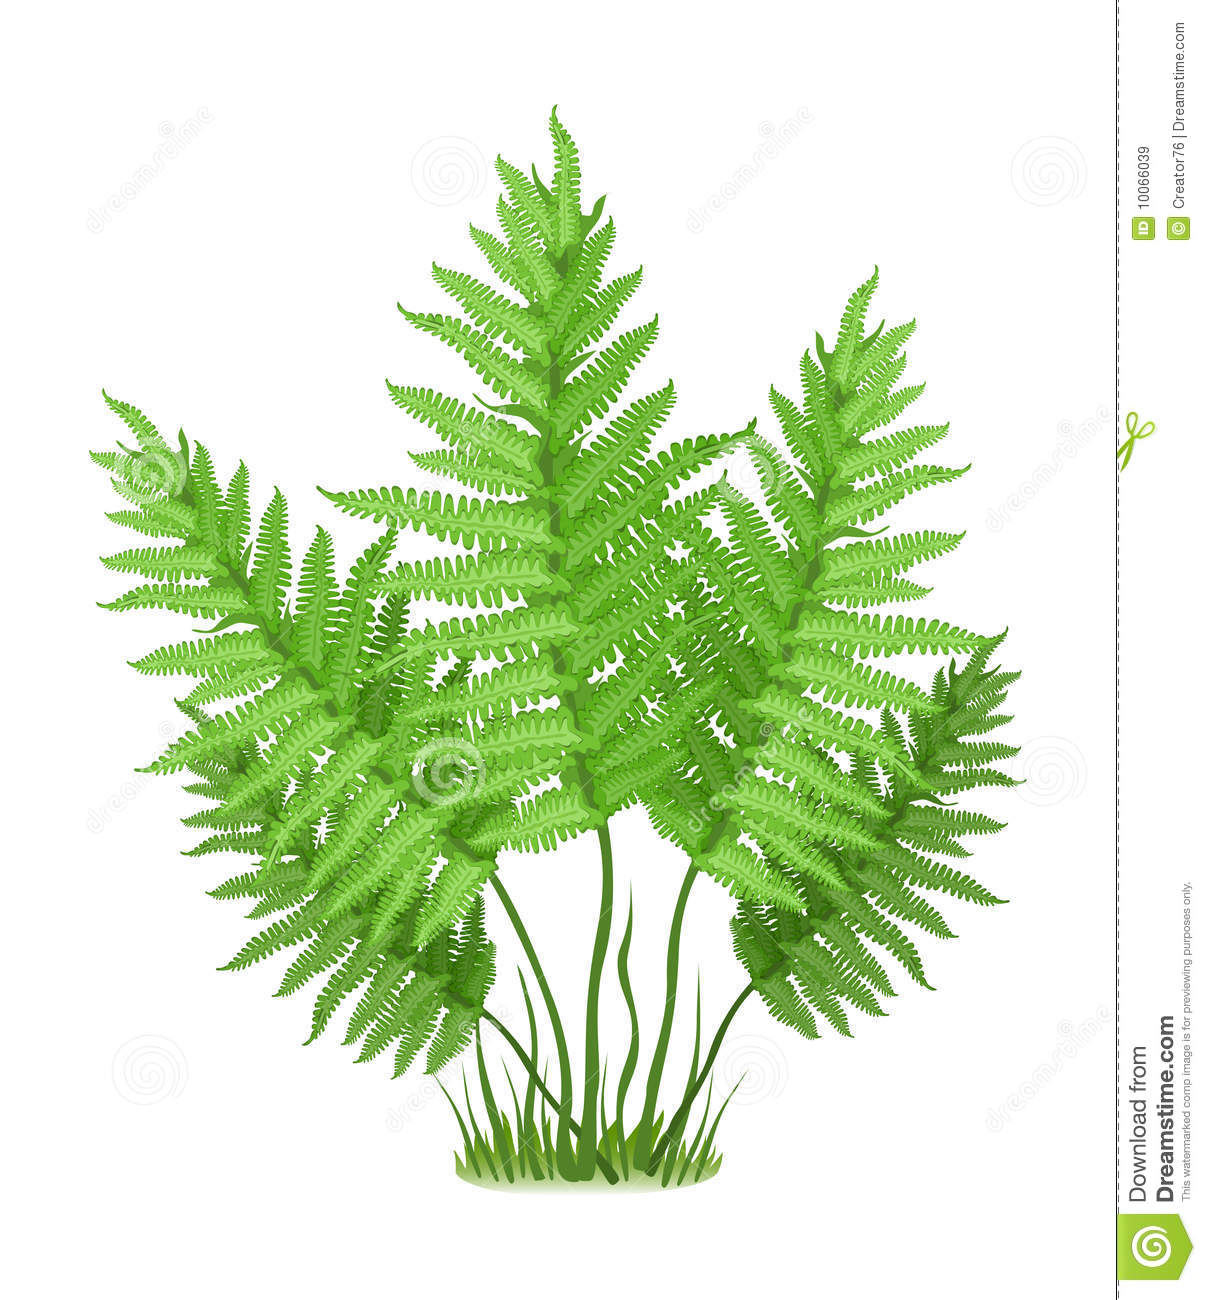 Tree fern clipart #19